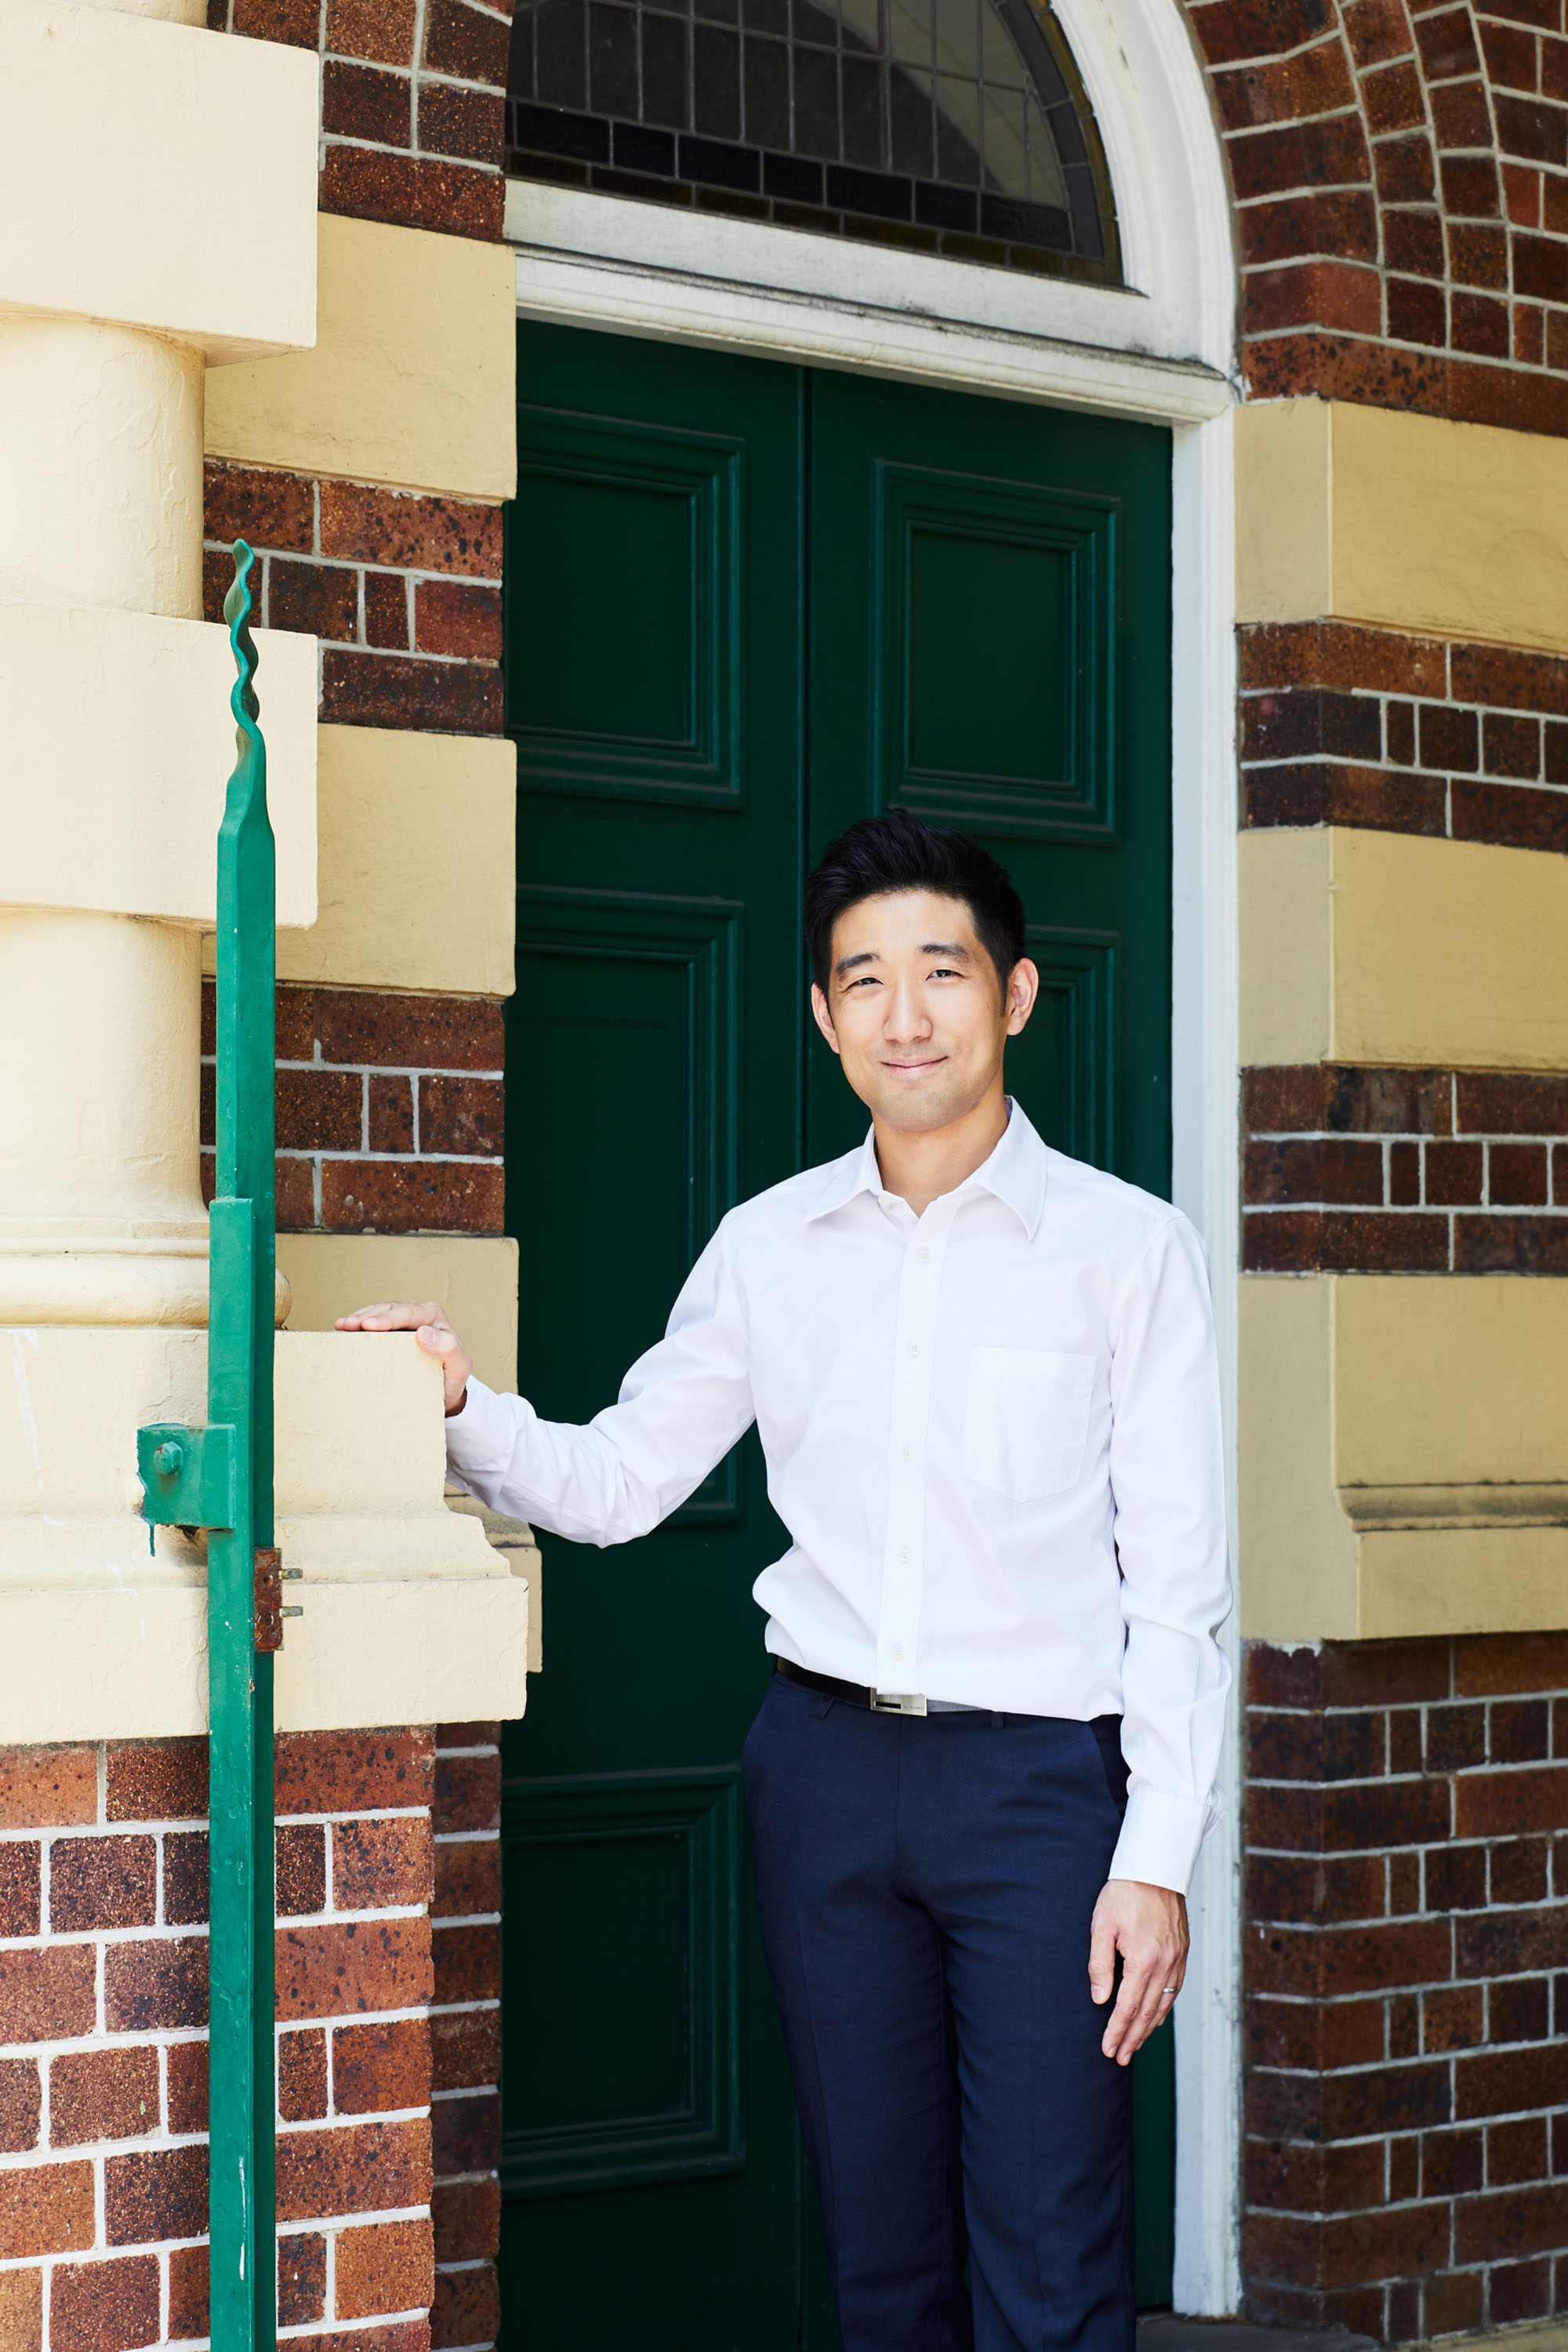 Daniel Loo - ARCHITECTRegistered Architect, Bachelor of Built Environment + Bachelor of Architecture